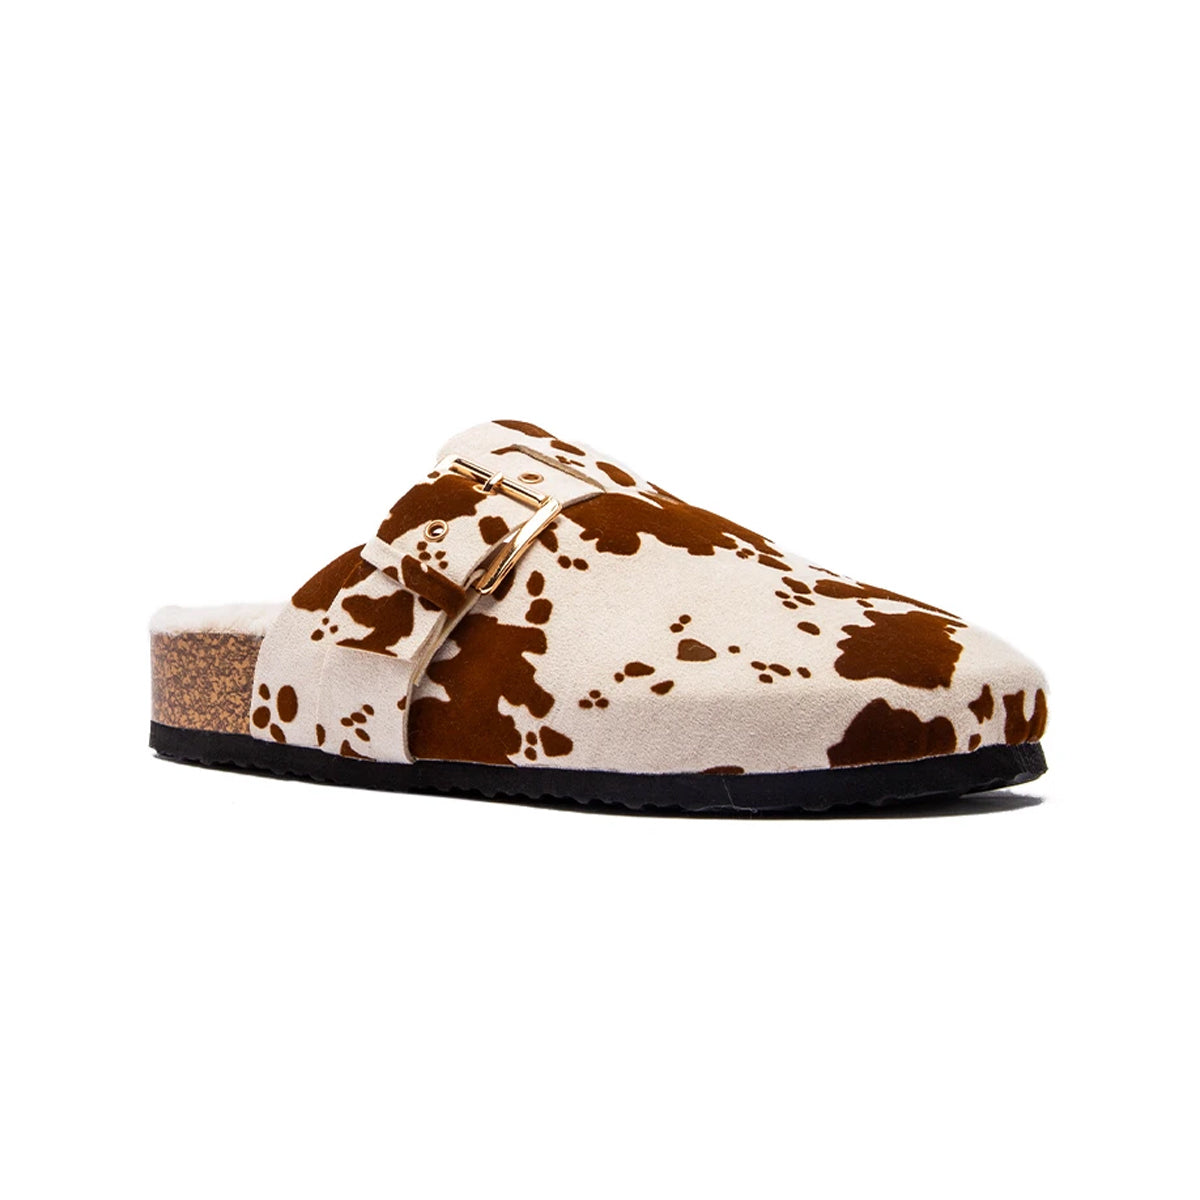 Qupid Women's Luka Close Toe Slide - Beige Brown Calf